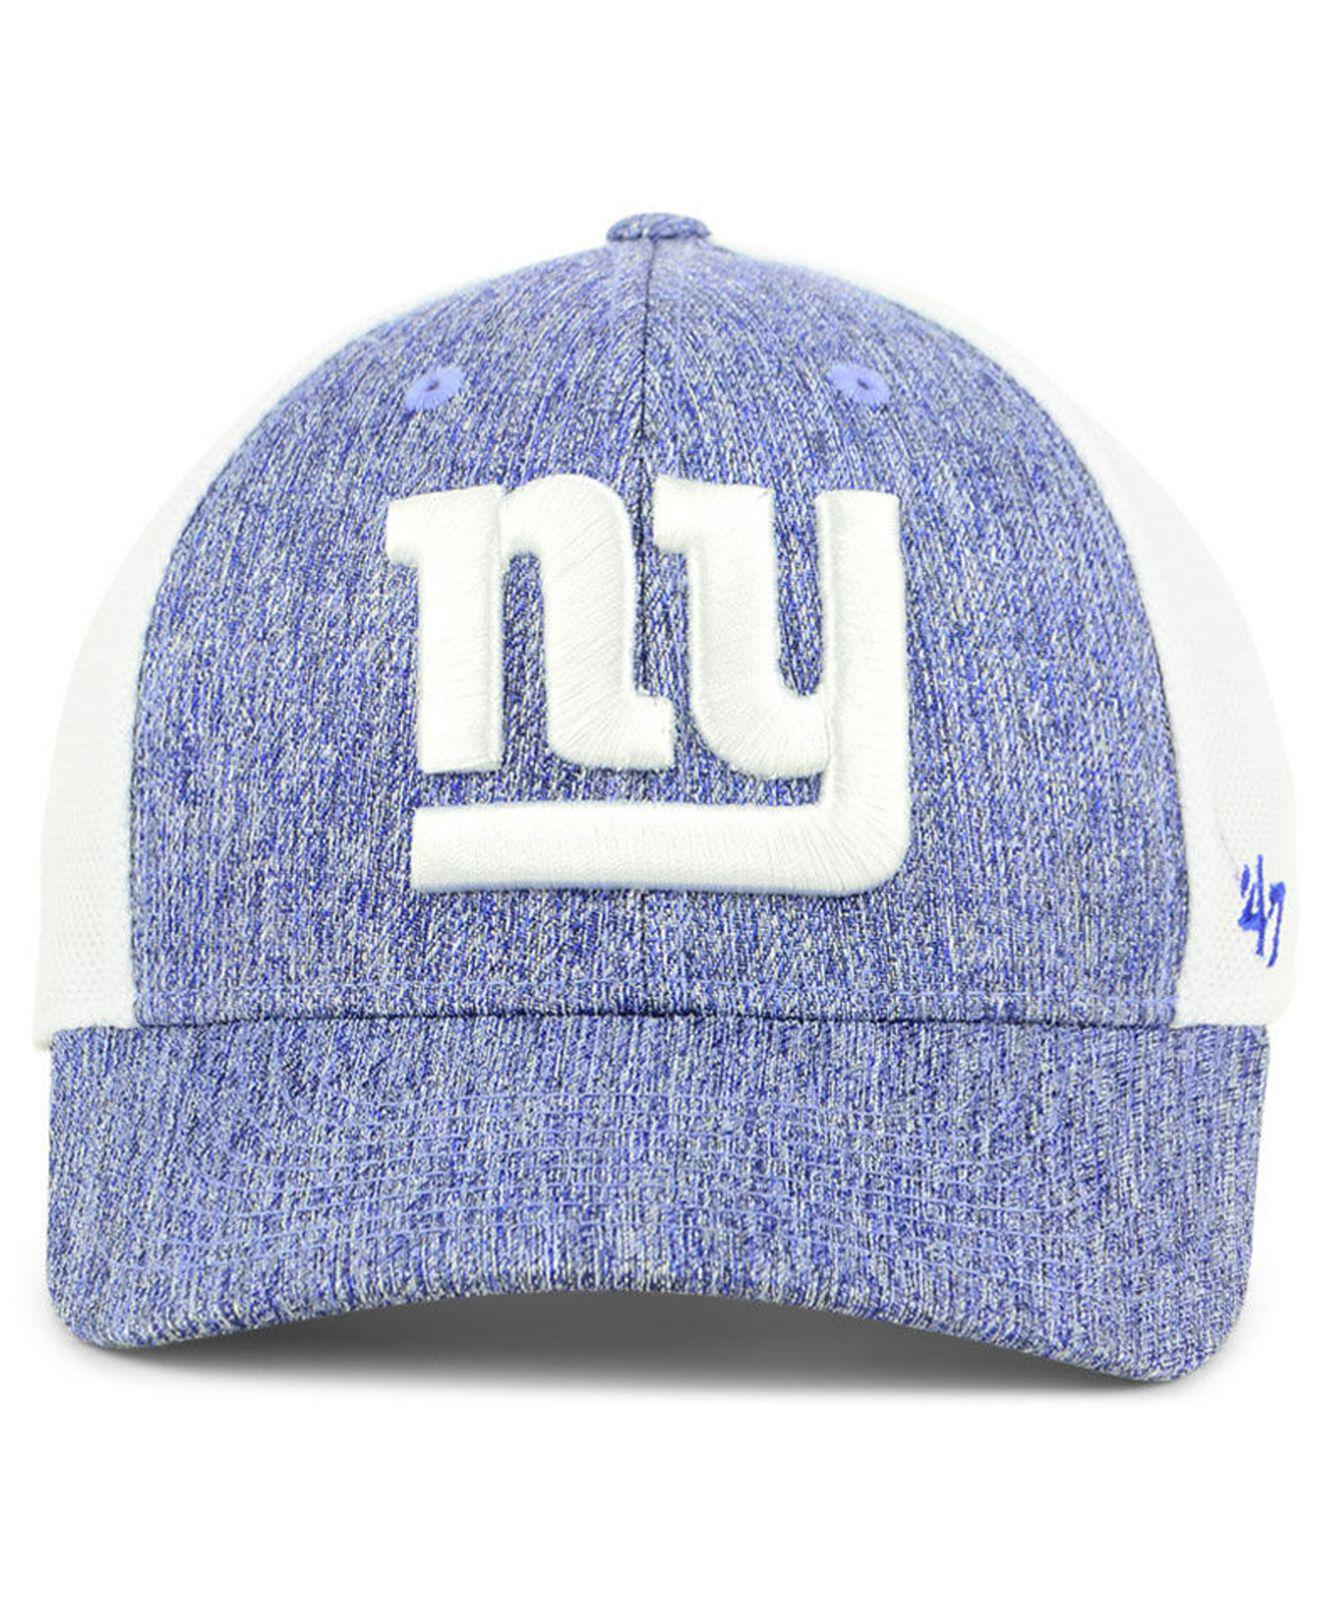 san francisco aa691 2d1dd Lyst - 47 Brand New York Giants Hazy Flex Contender Stretch Fitted Cap in  Blue for Men